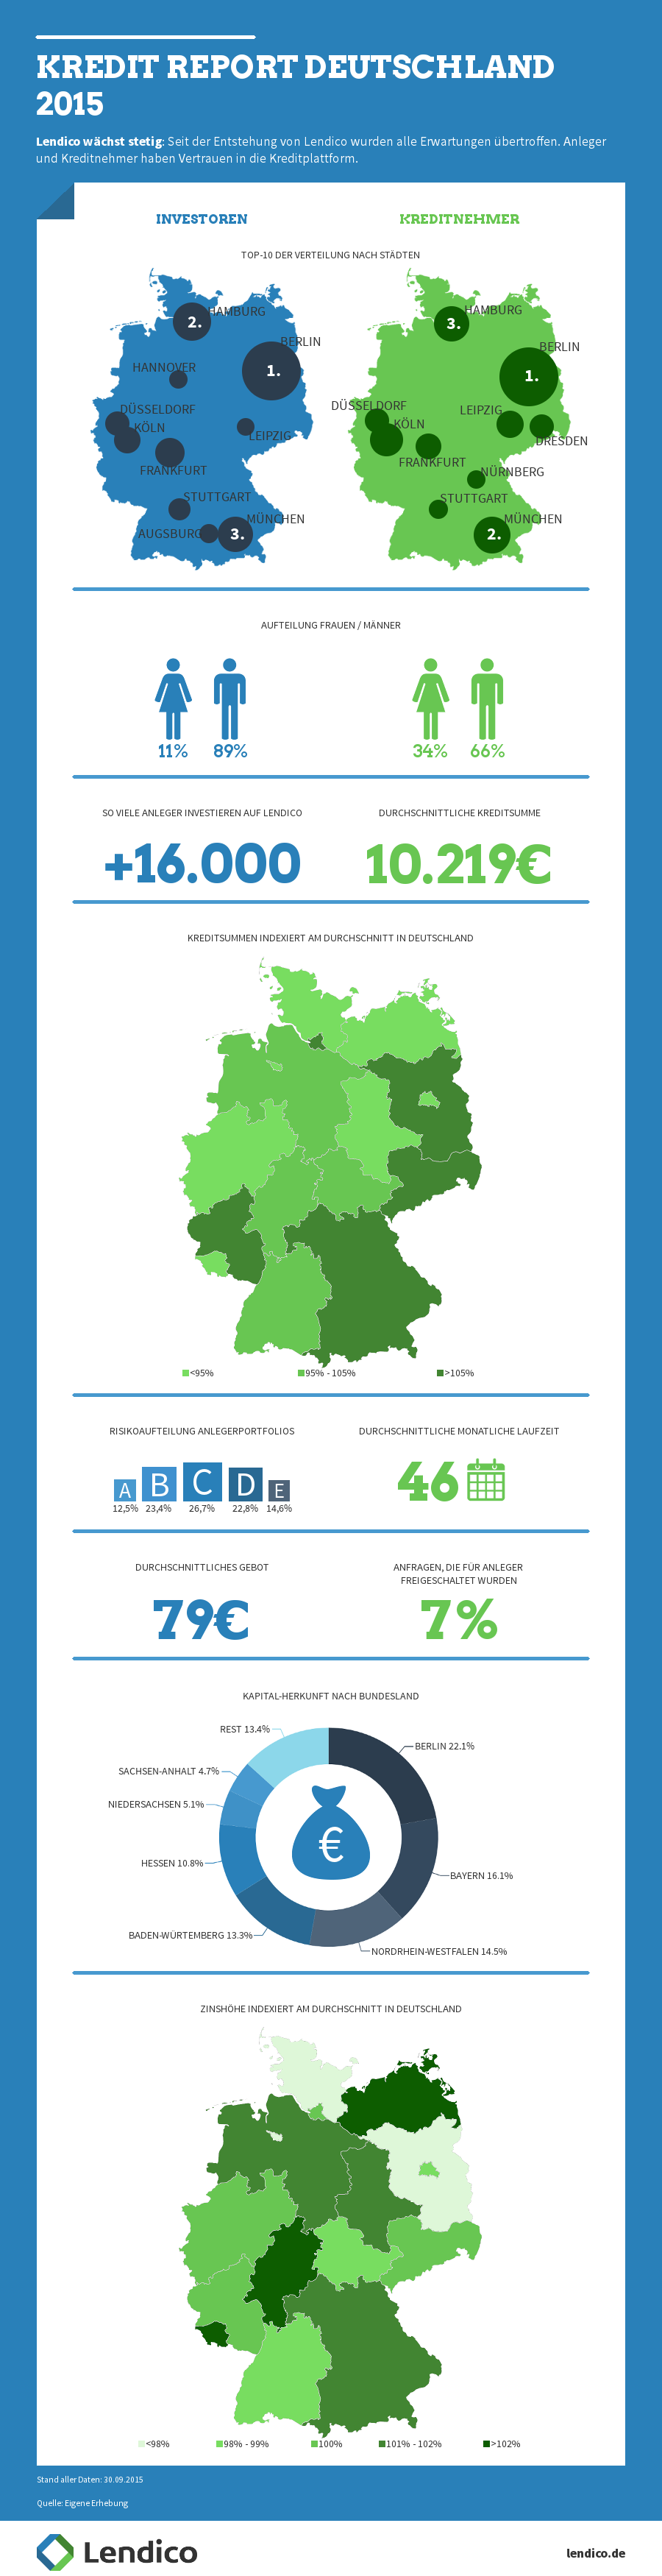 Kredit-Report 2015 - Infografik